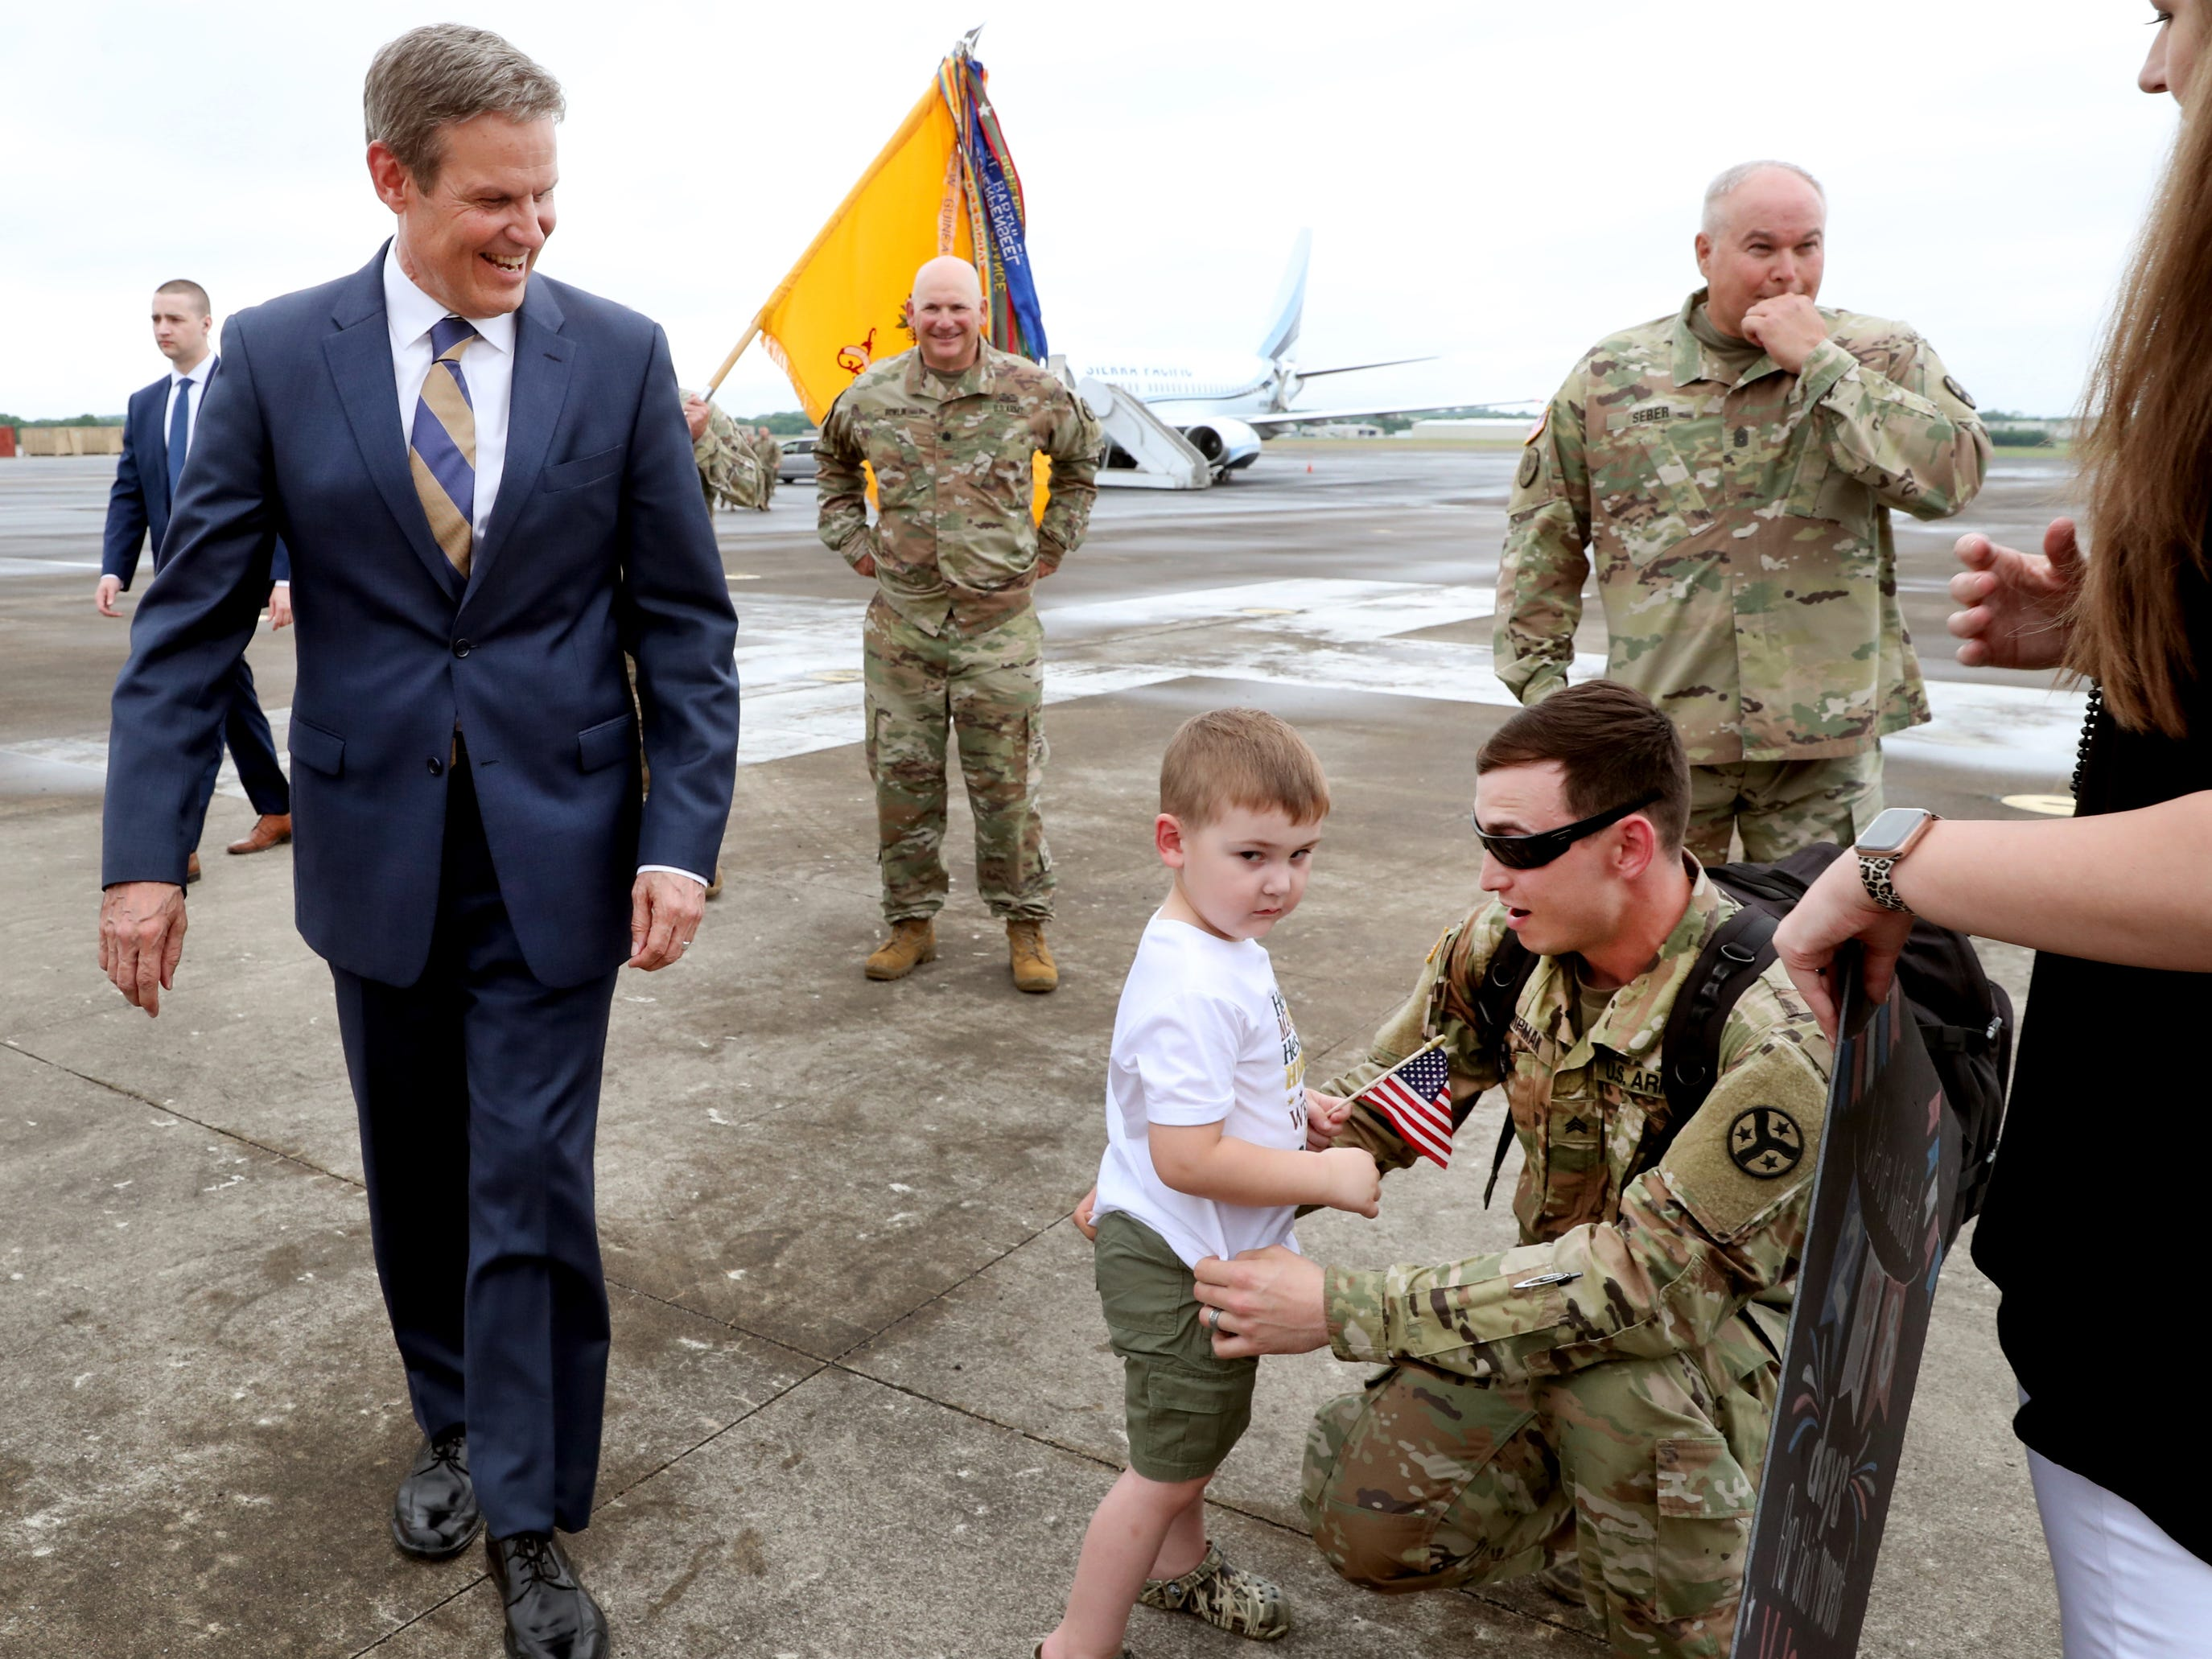 Tennessee Governor Bill Lee watches as Sgt. Cody Chipman, with the 278th ACR is reunited with his son Camden Chipman, 3 as he returns to the Volunteer Training Site in Smyrna, from a 9 month overseas deployment on Thursday, May 9, 2019.